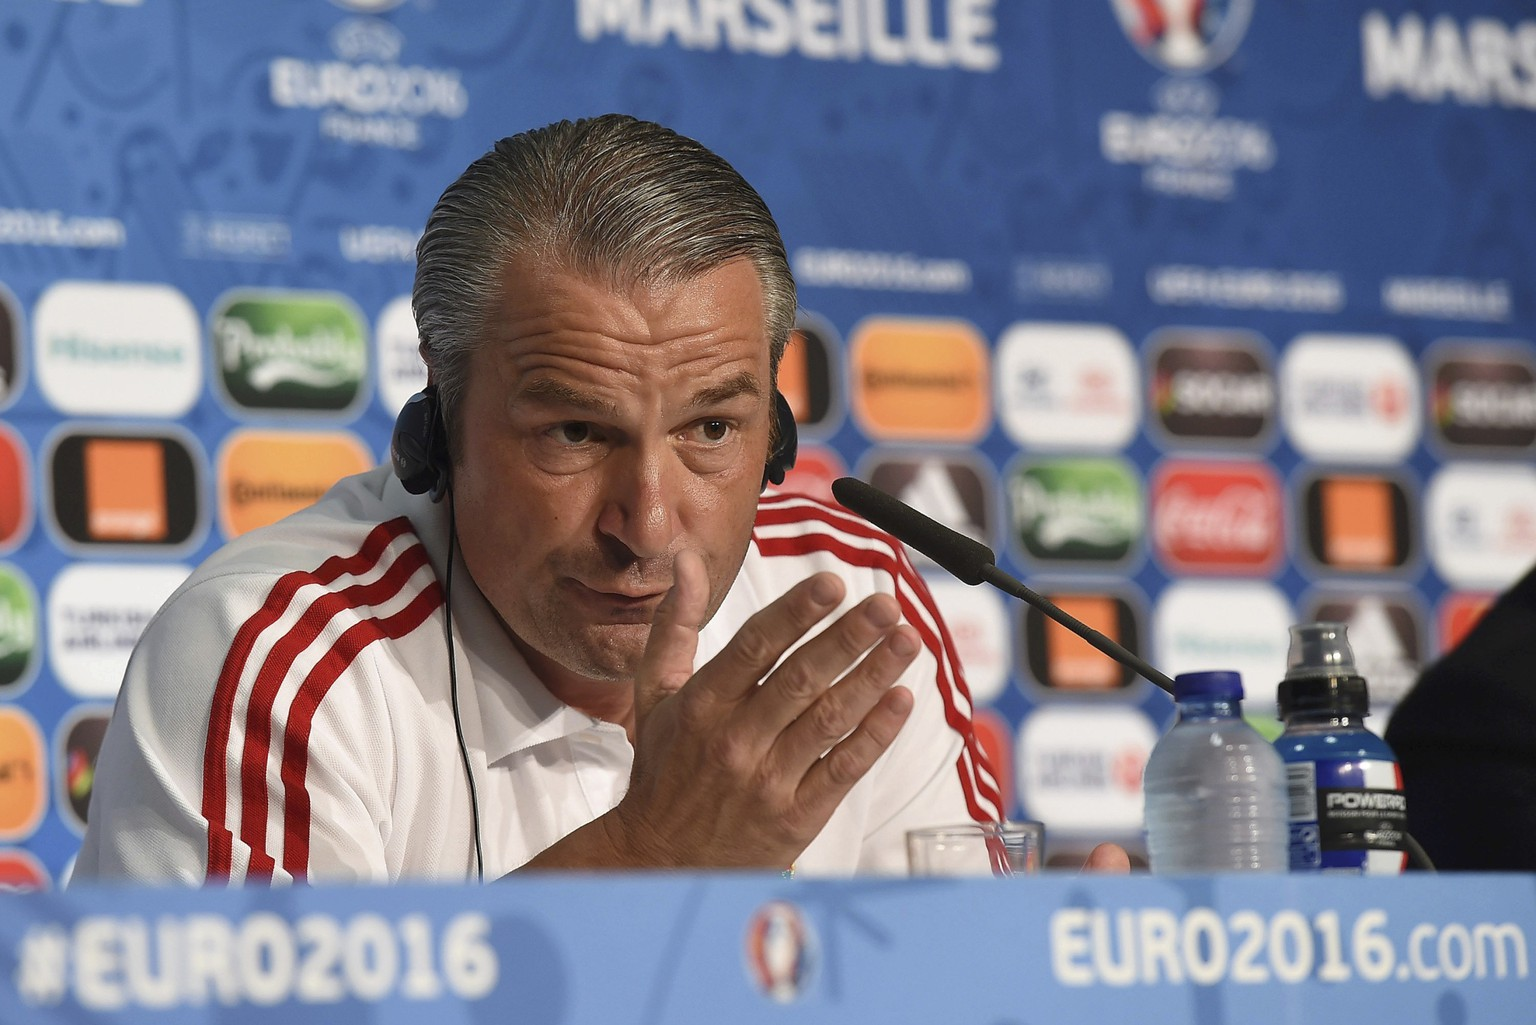 Football Soccer - EURO 2016 - Hungary News Conference - Marseille, France 17/6/16  Hungary's coach Bernd Storck attends a news conference     REUTERS/UEFA/Handout  via REUTERS  NO SALES. NO ARCHIVES. THIS IMAGE HAS BEEN SUPPLIED BY A THIRD PARTY. IT IS DISTRIBUTED, EXACTLY AS RECEIVED BY REUTERS, AS A SERVICE TO CLIENTS.